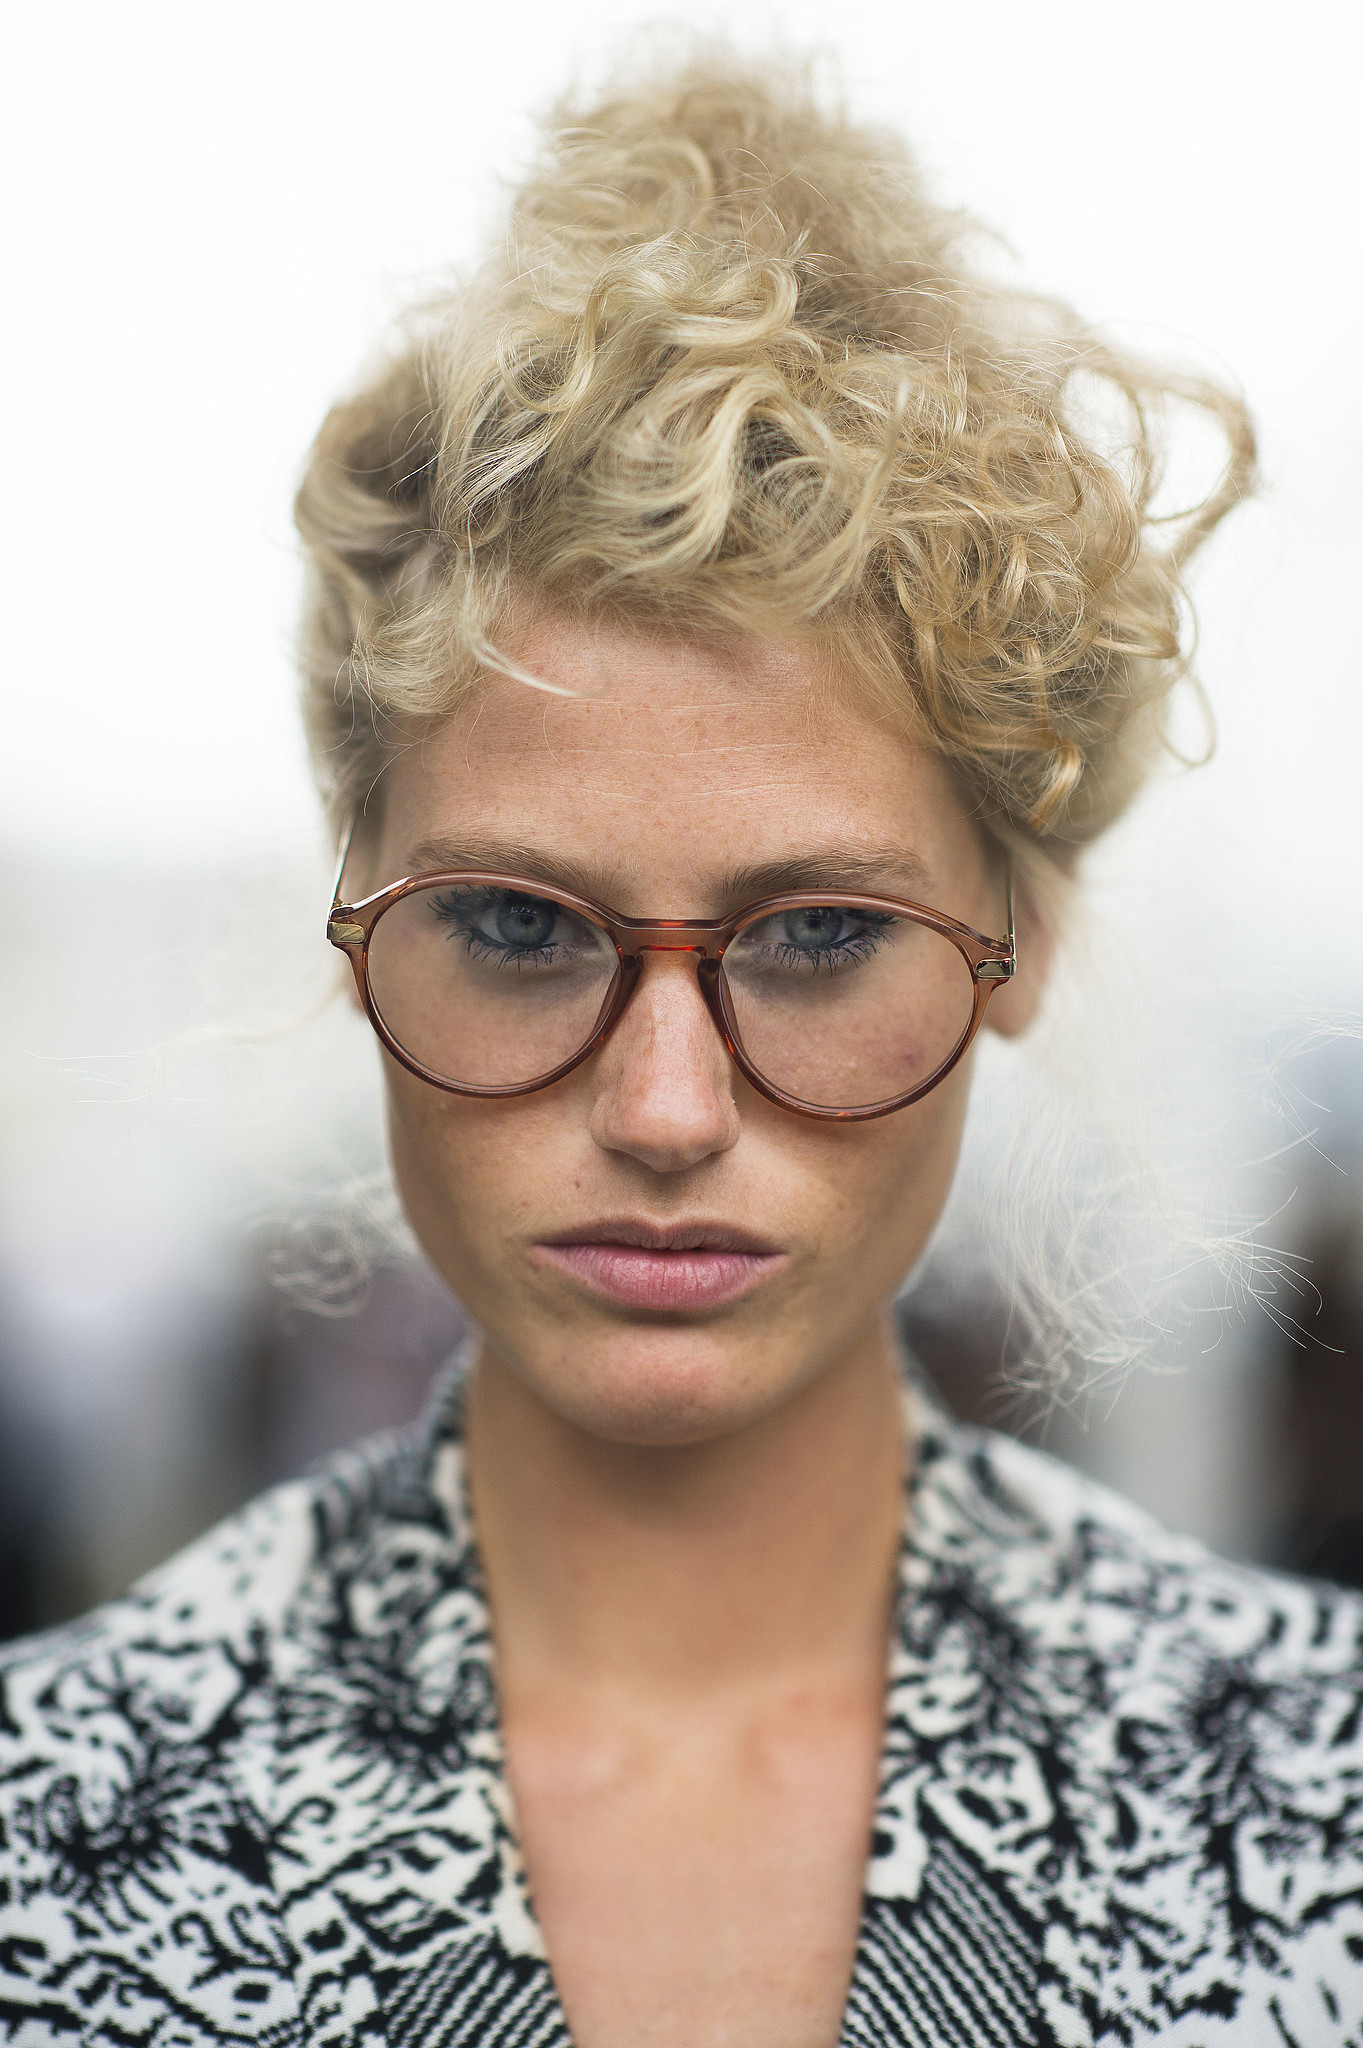 This coiled topknot is too perfect for words. Source: Le 21ème | Adam Katz Sinding